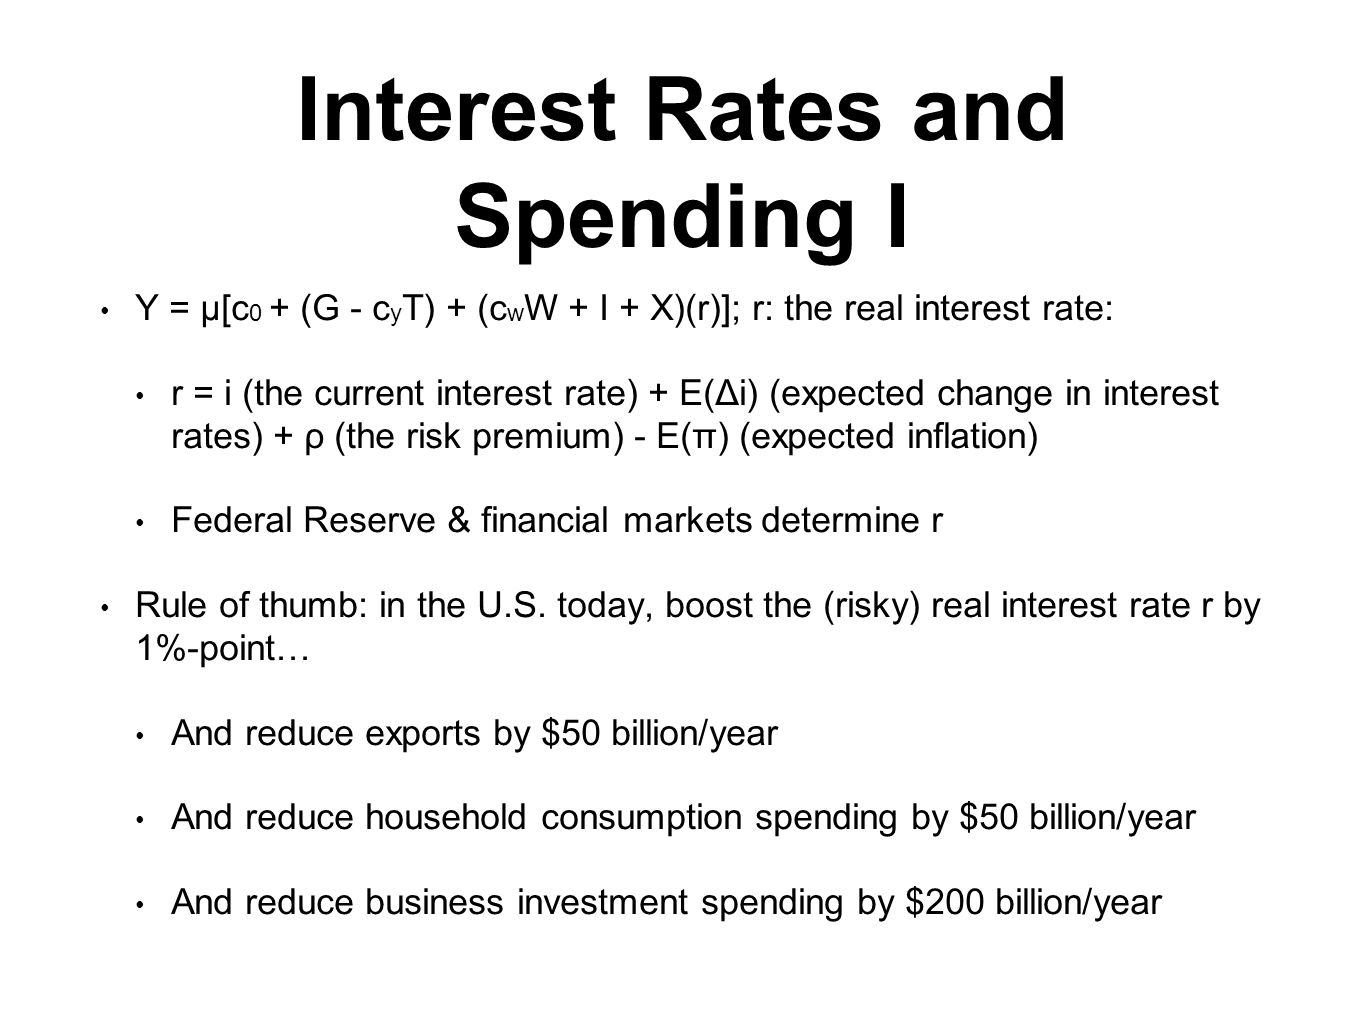 Interest Rates, Wealth, Exchange Rates, Exports, Business Investment and Spending The Investment-Savings Curve Slope = -$200B/yr/%-pt The natural real risky rate of interest Full employment/potential output Quantity of money at which people are happy holding the cash there is at full employment Spending = Income at full employment